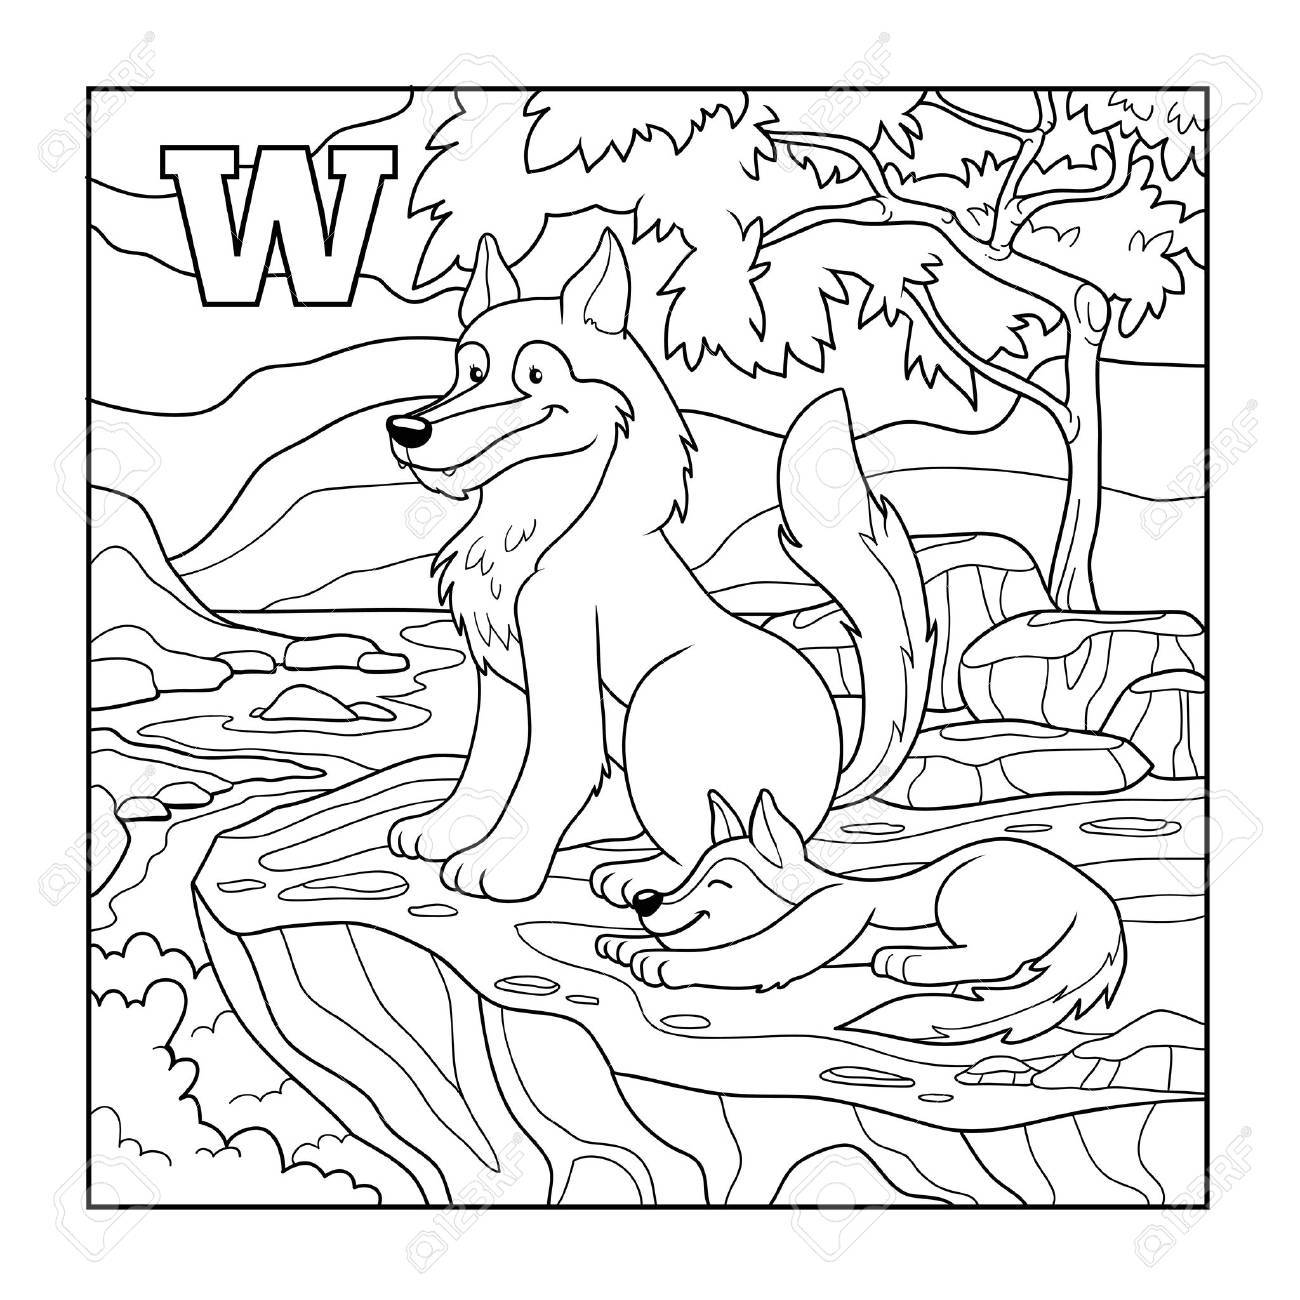 coloring book wolf colorless illustration letter w royalty